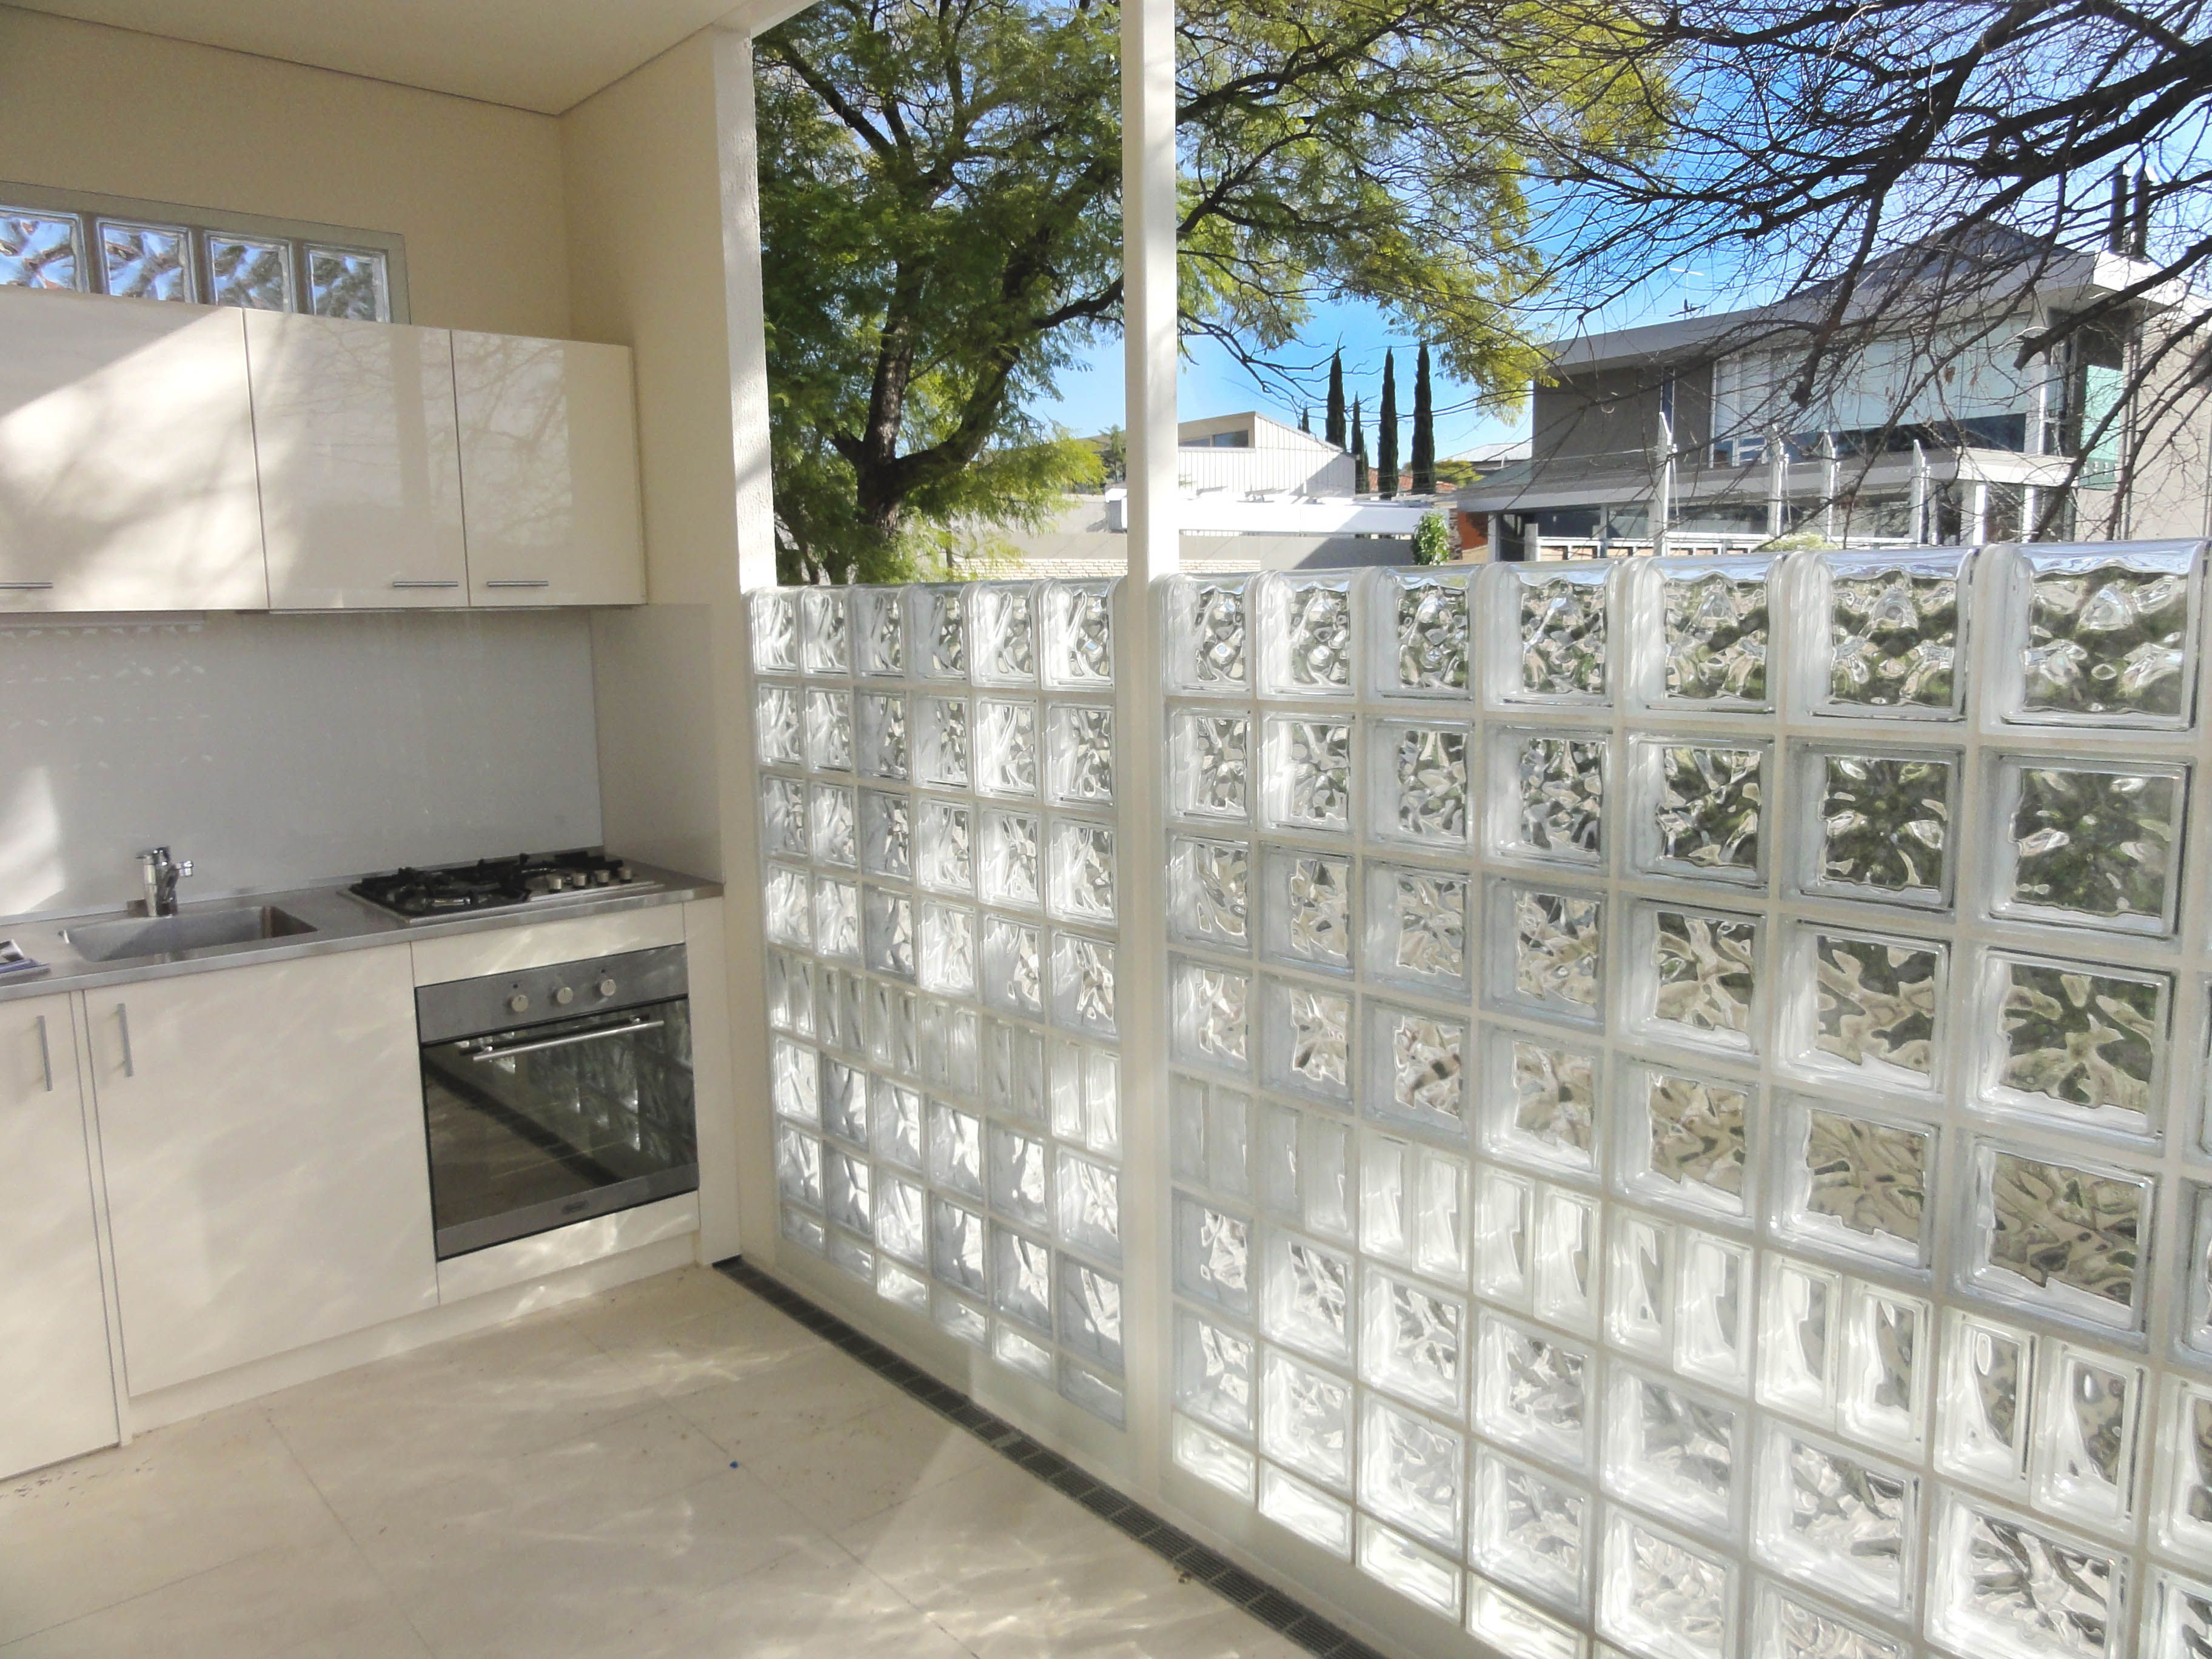 Outdoor upstairs patio area with outdoor kitchenette and for Glass bricks designs